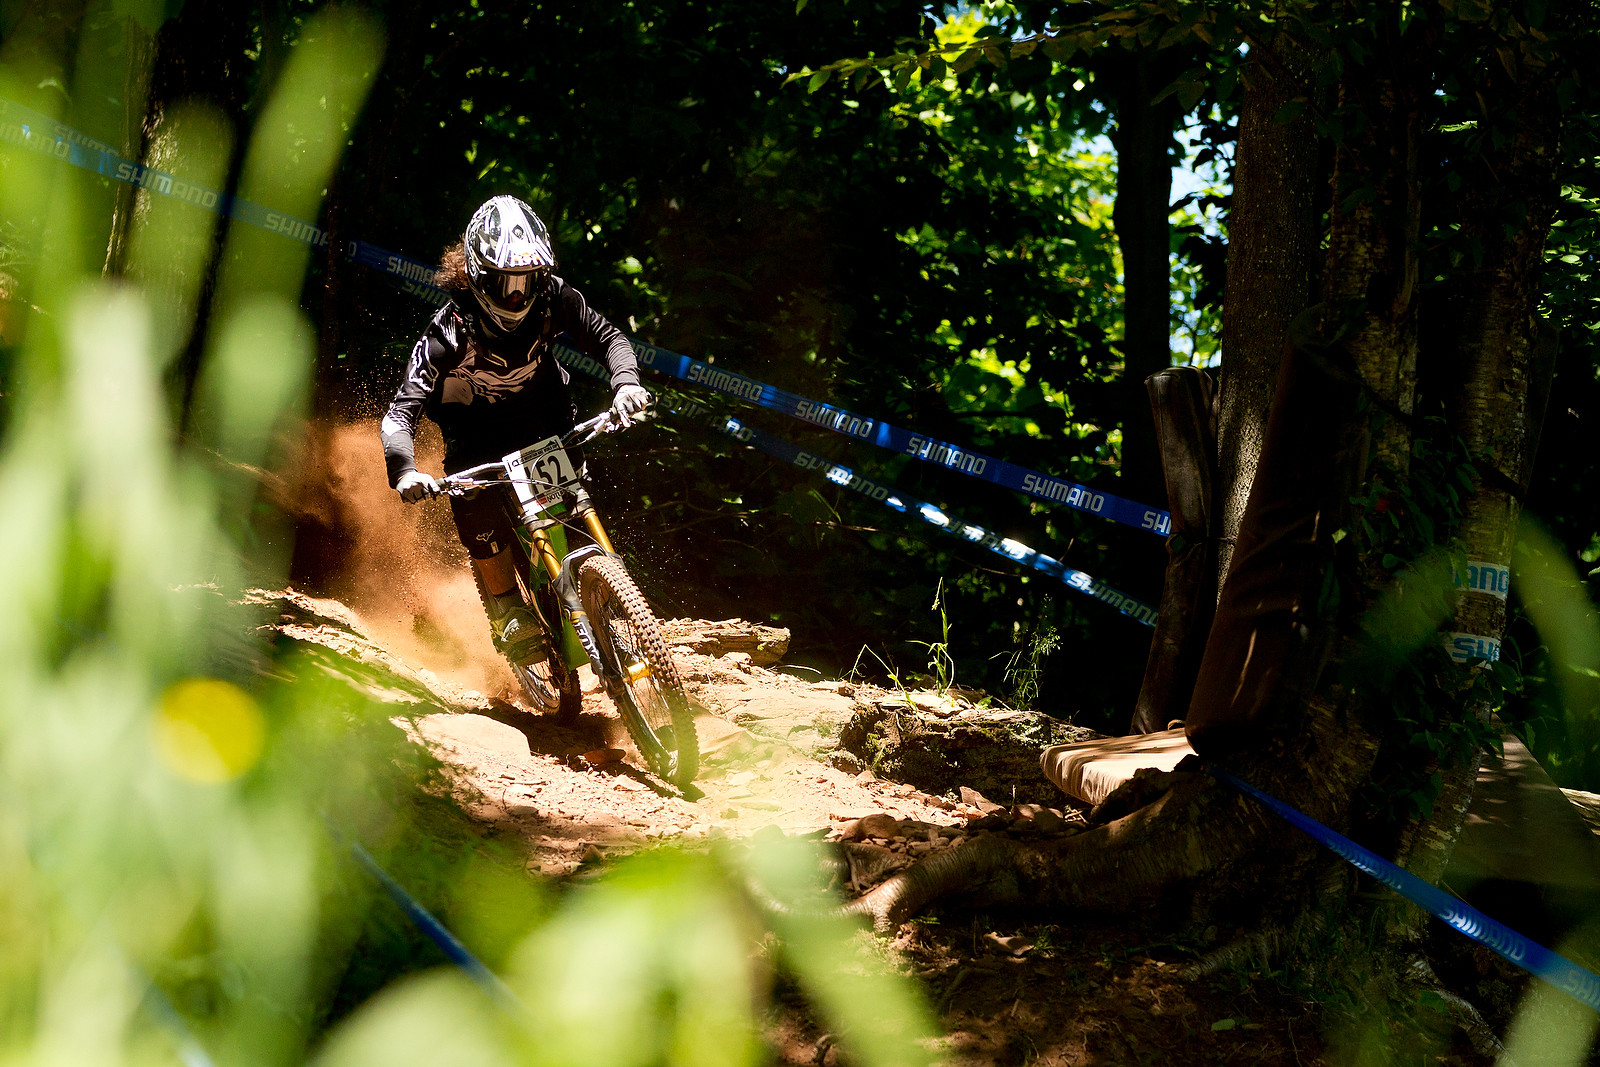 Yuki Kushima at Windham World Cup - 2012 UCI World Cup, Windham, New York Day 2 - Mountain Biking Pictures - Vital MTB